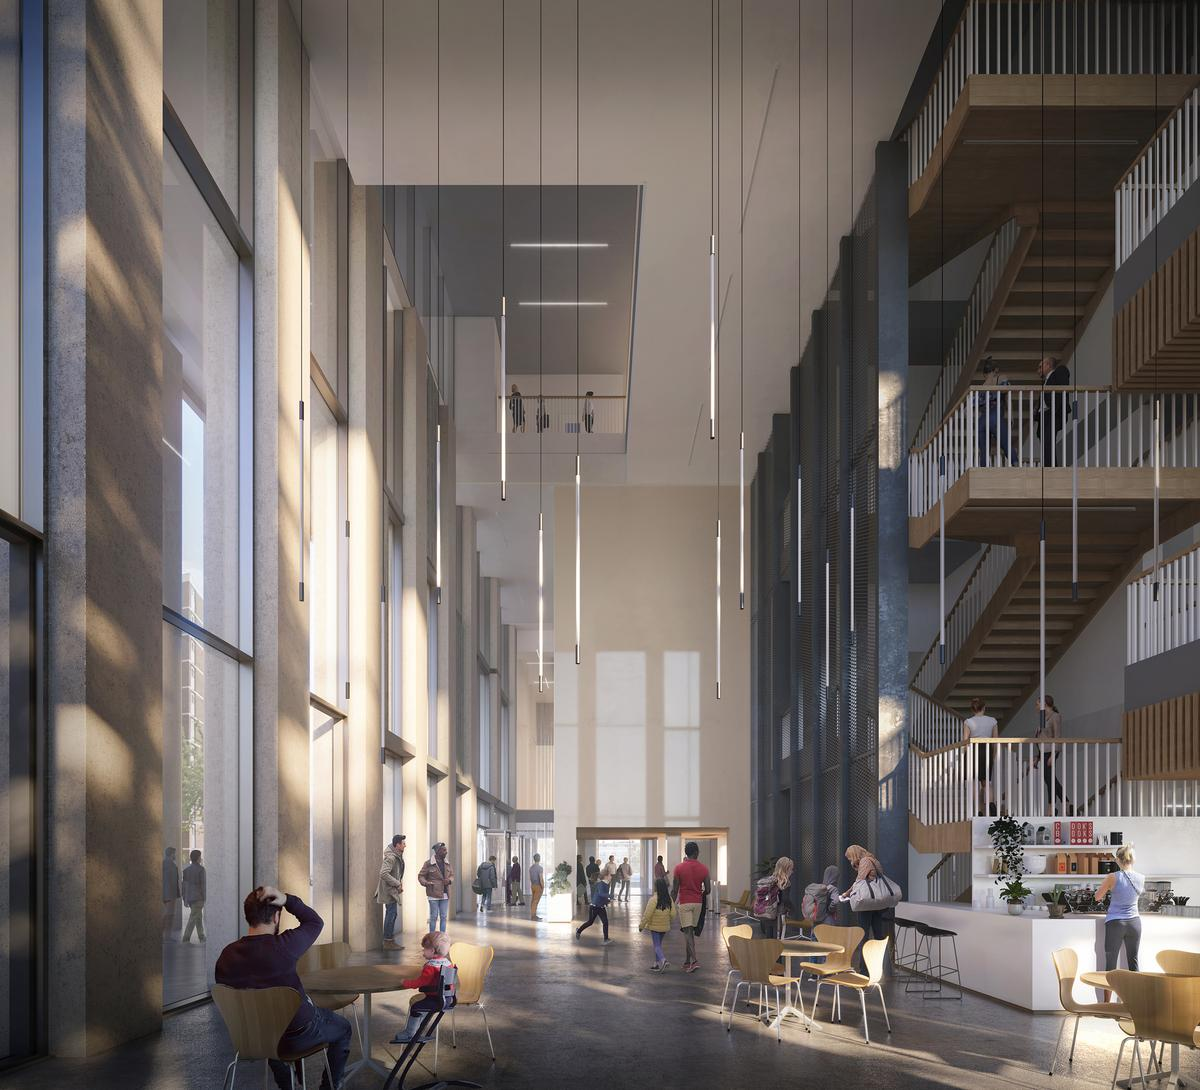 The Britannia is part of Hackney Council's directive to build nearly 2,000 homes, three schools, and a leisure centre on more than 20 sites across the borough by 2022. / Courtesy of FaulknerBrowns Architects